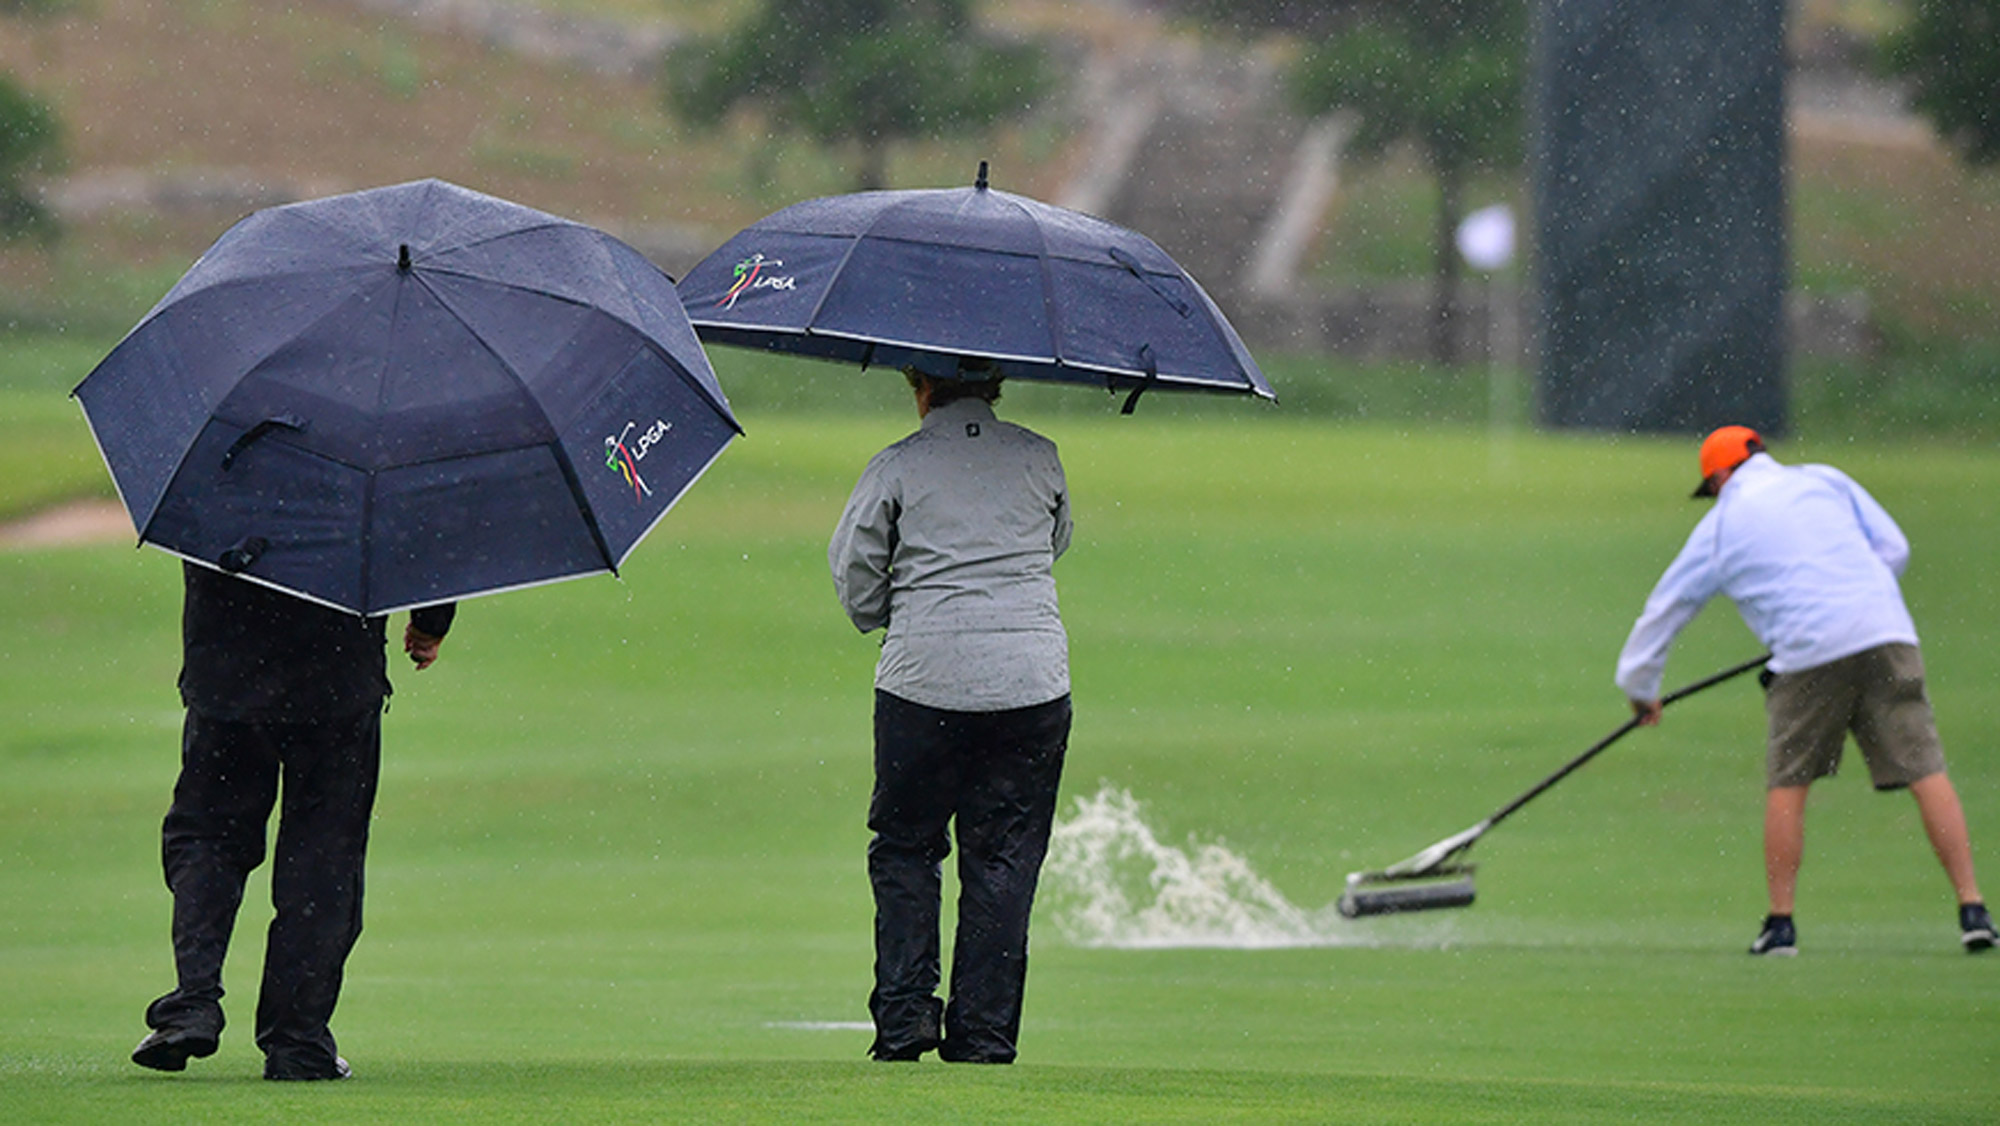 South Korea's Ko grabs share of lead in rain-hit Indy LPGA